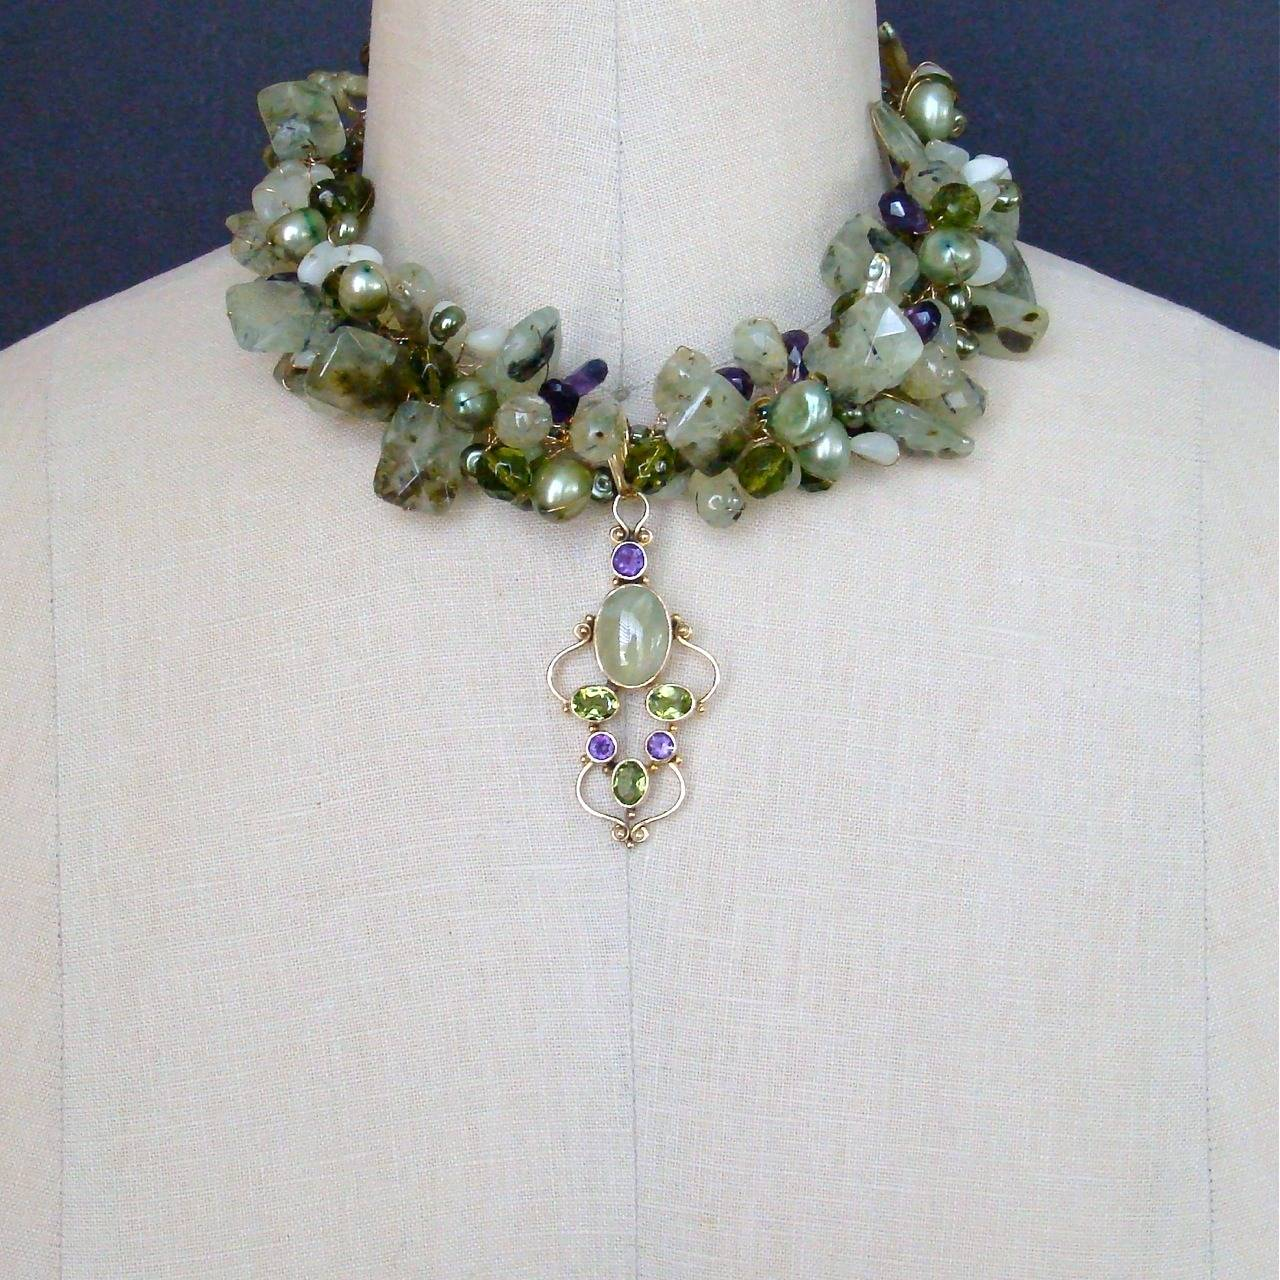 Peridot Grossular Garnet Choker Necklace - Amethyst Pearls New Jade 5